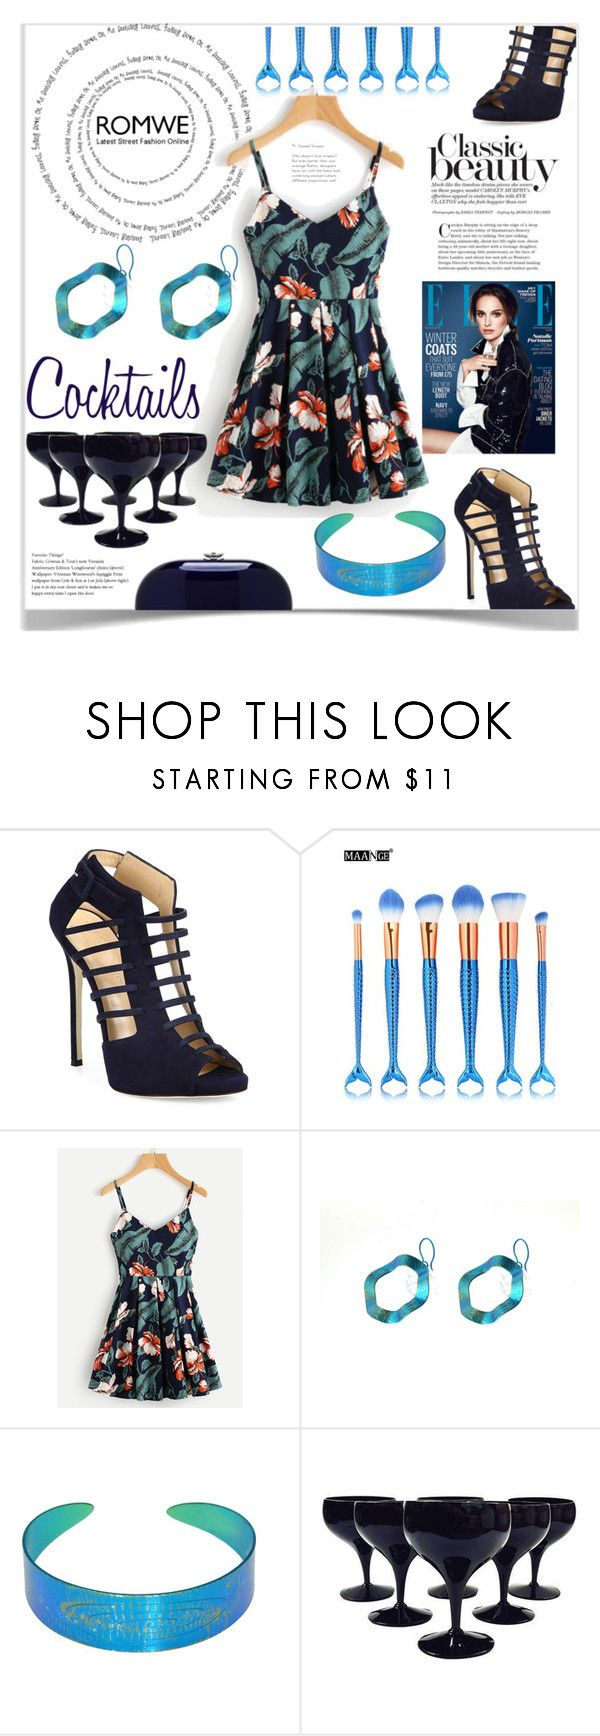 """Cocktail night"" by giampourasjewel ❤ liked on Polyvore featuring Giuseppe Zanotti, GE, Jeffrey Levinson, romwe and brunchgoals"